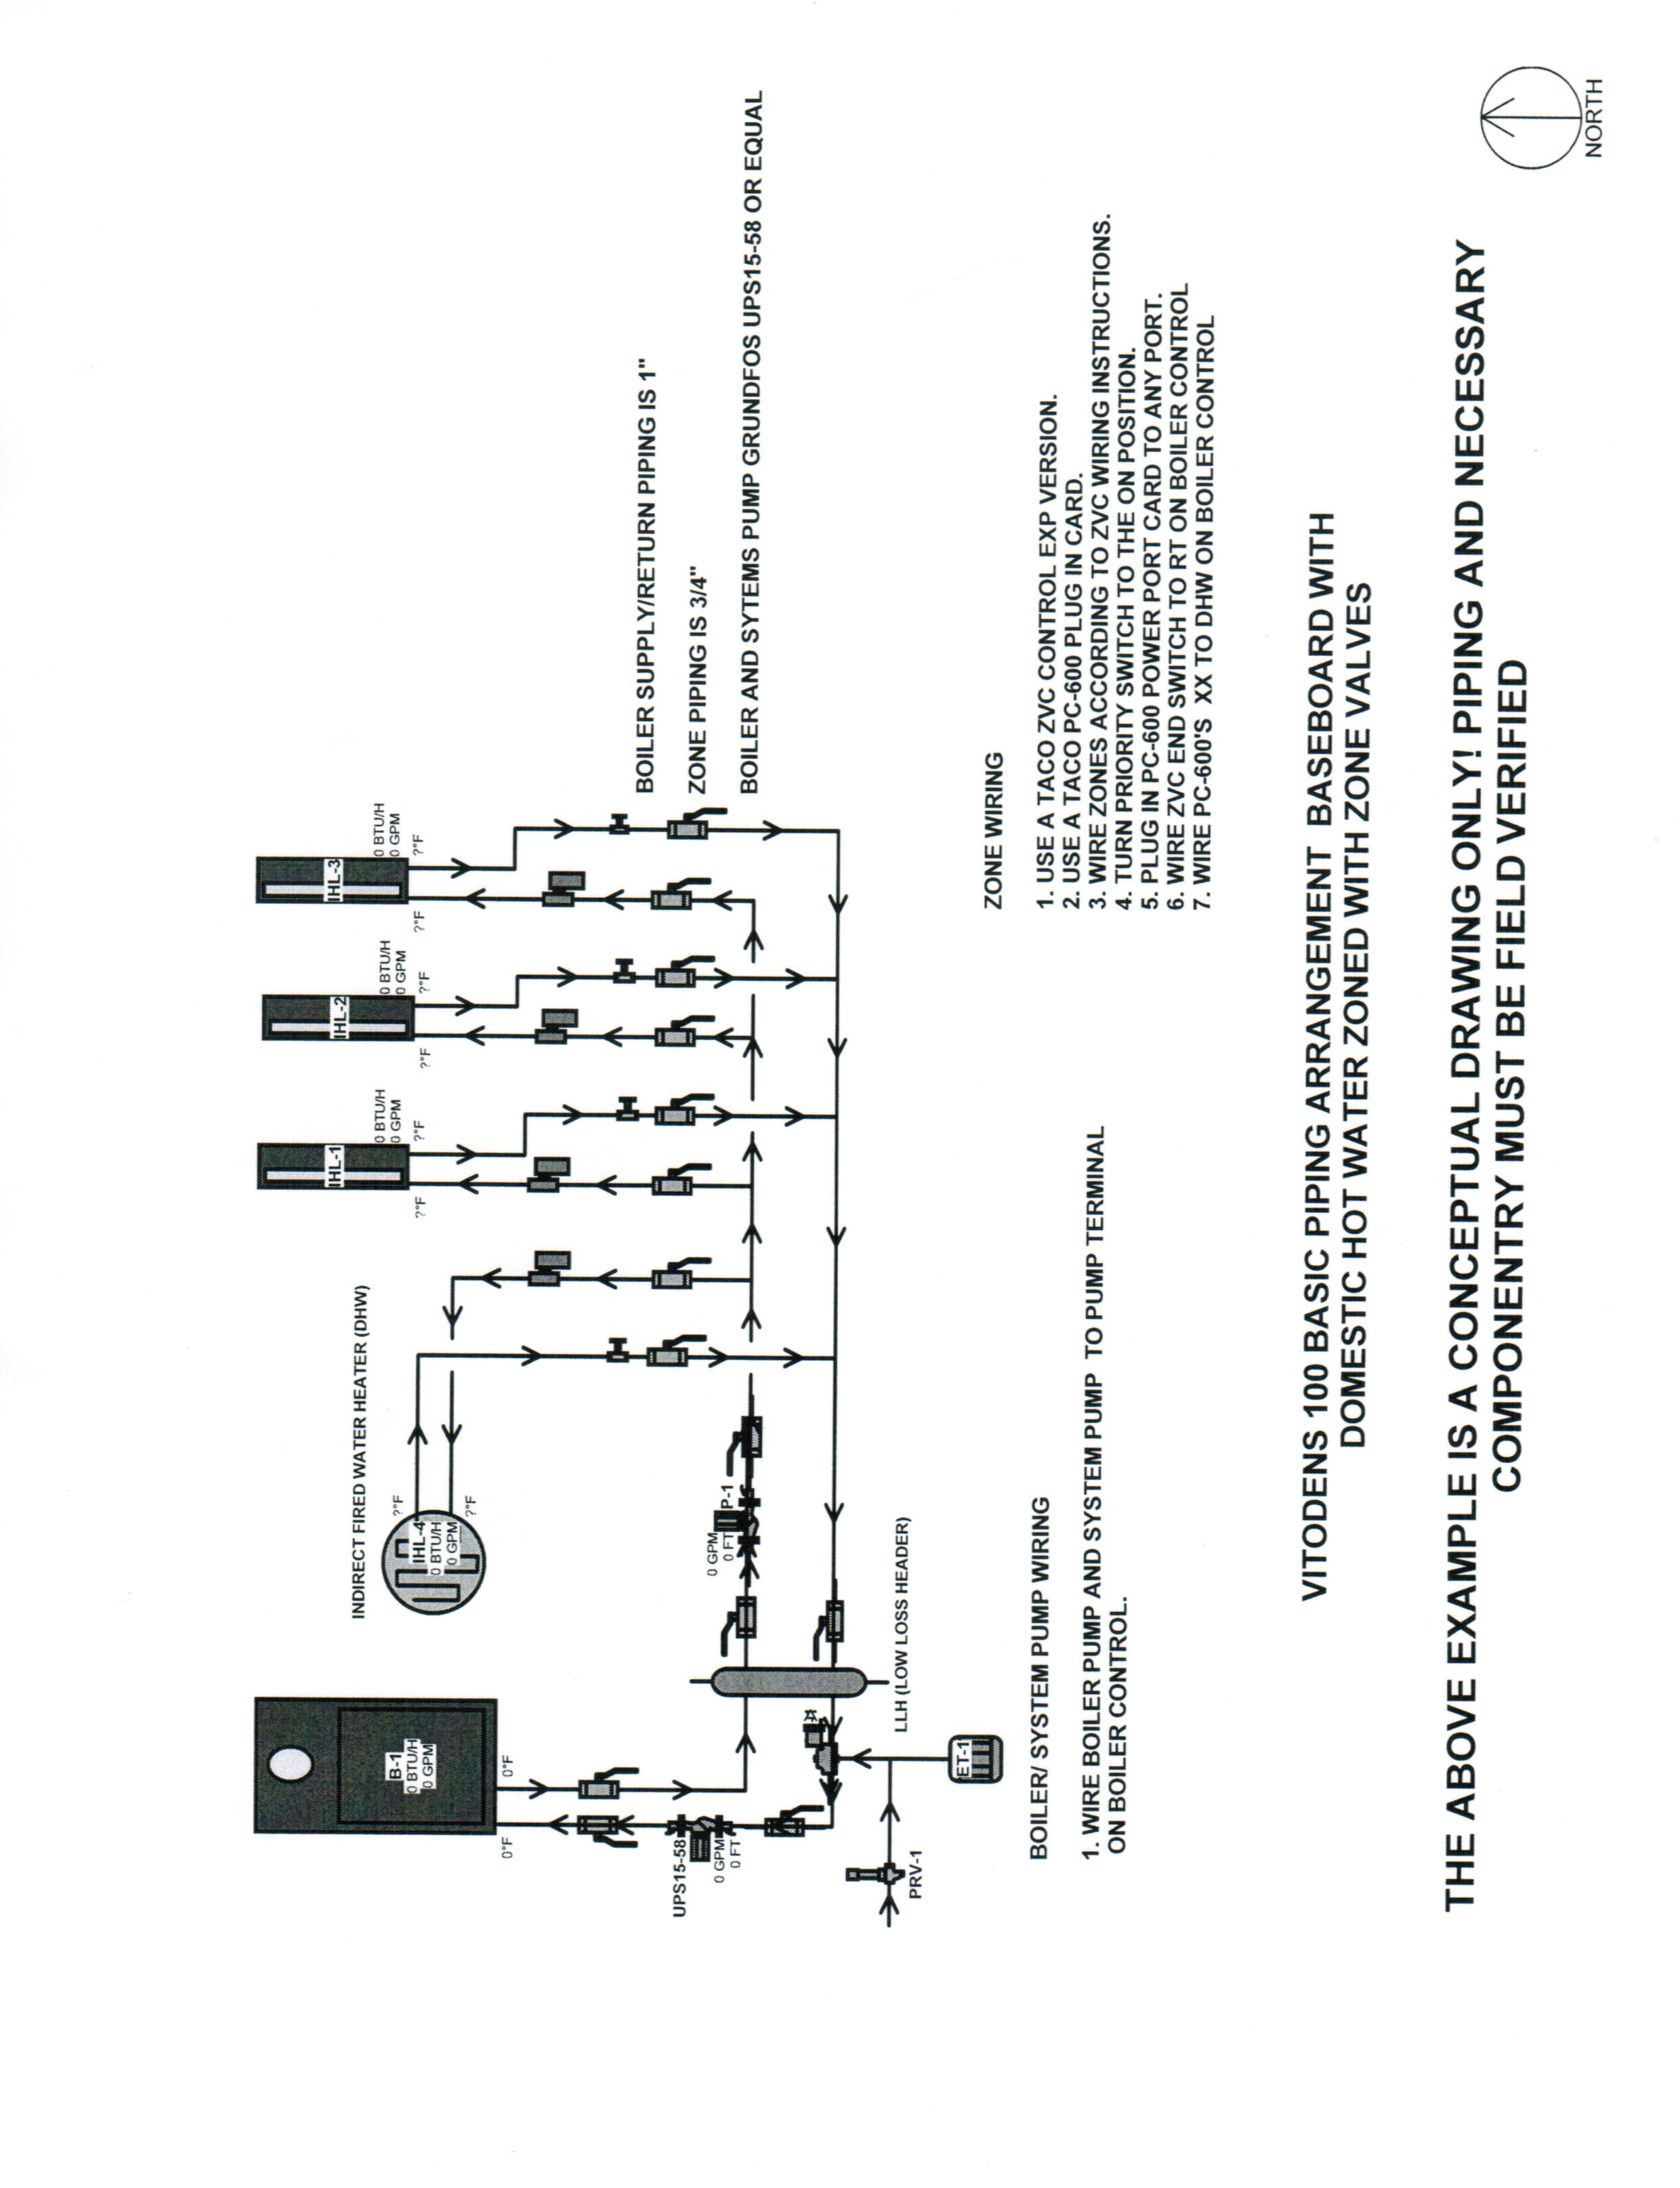 taco zone valves wiring diagram